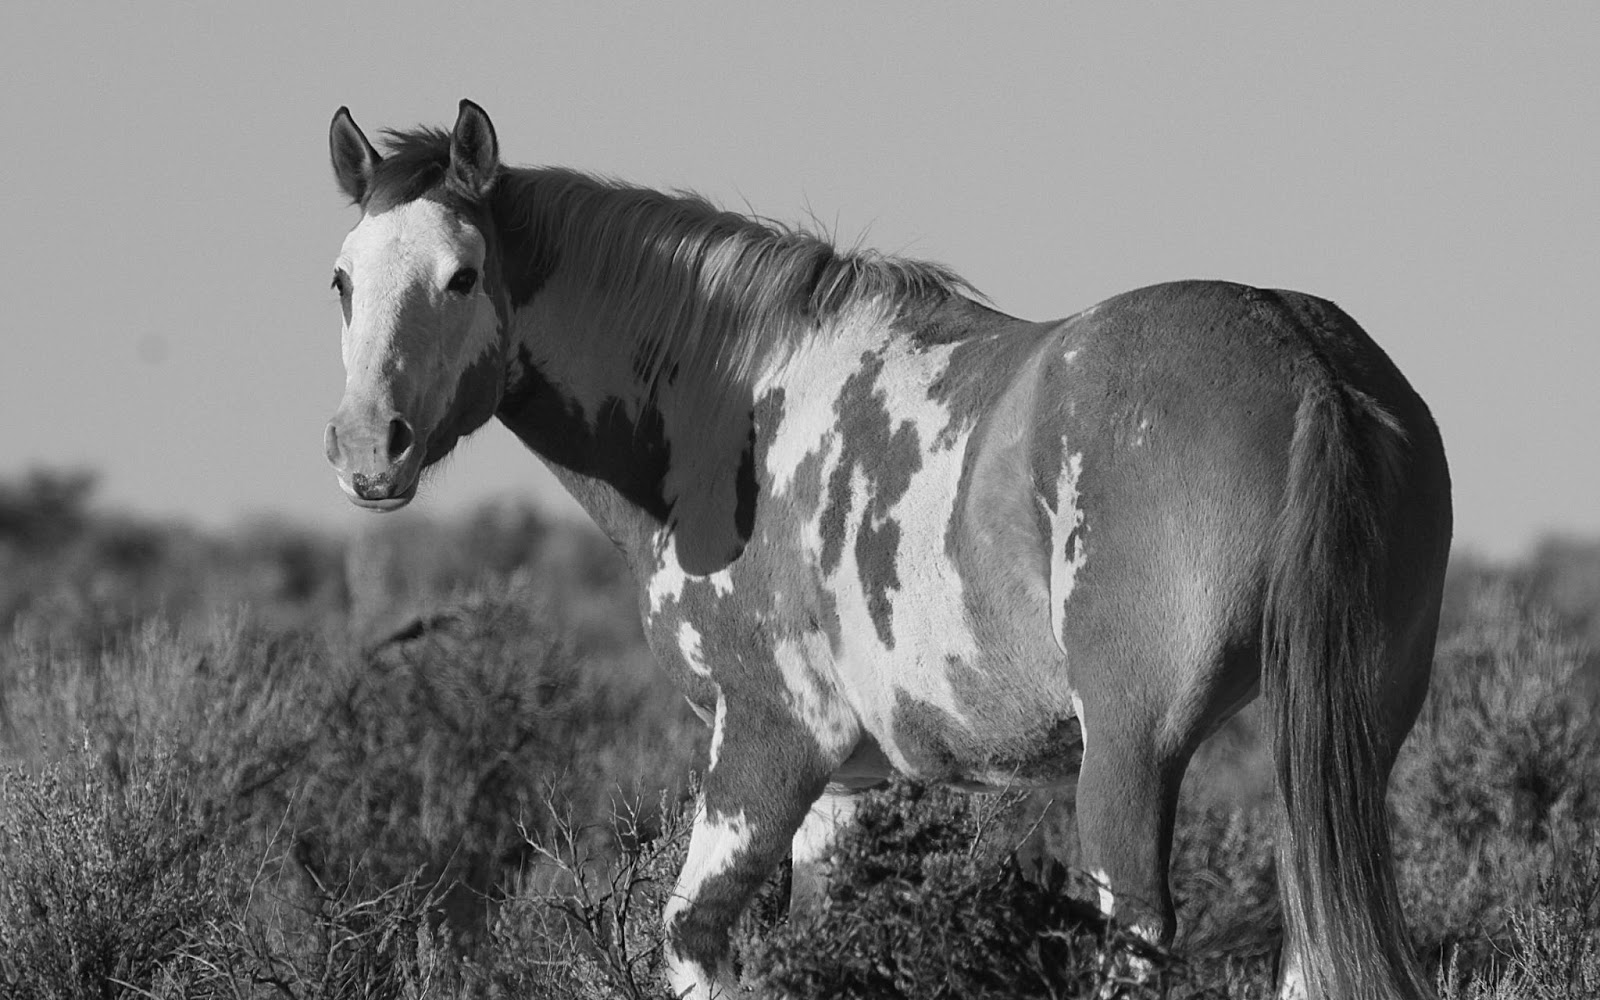 Black And White Animals Wallpapers High Quality | Download ...